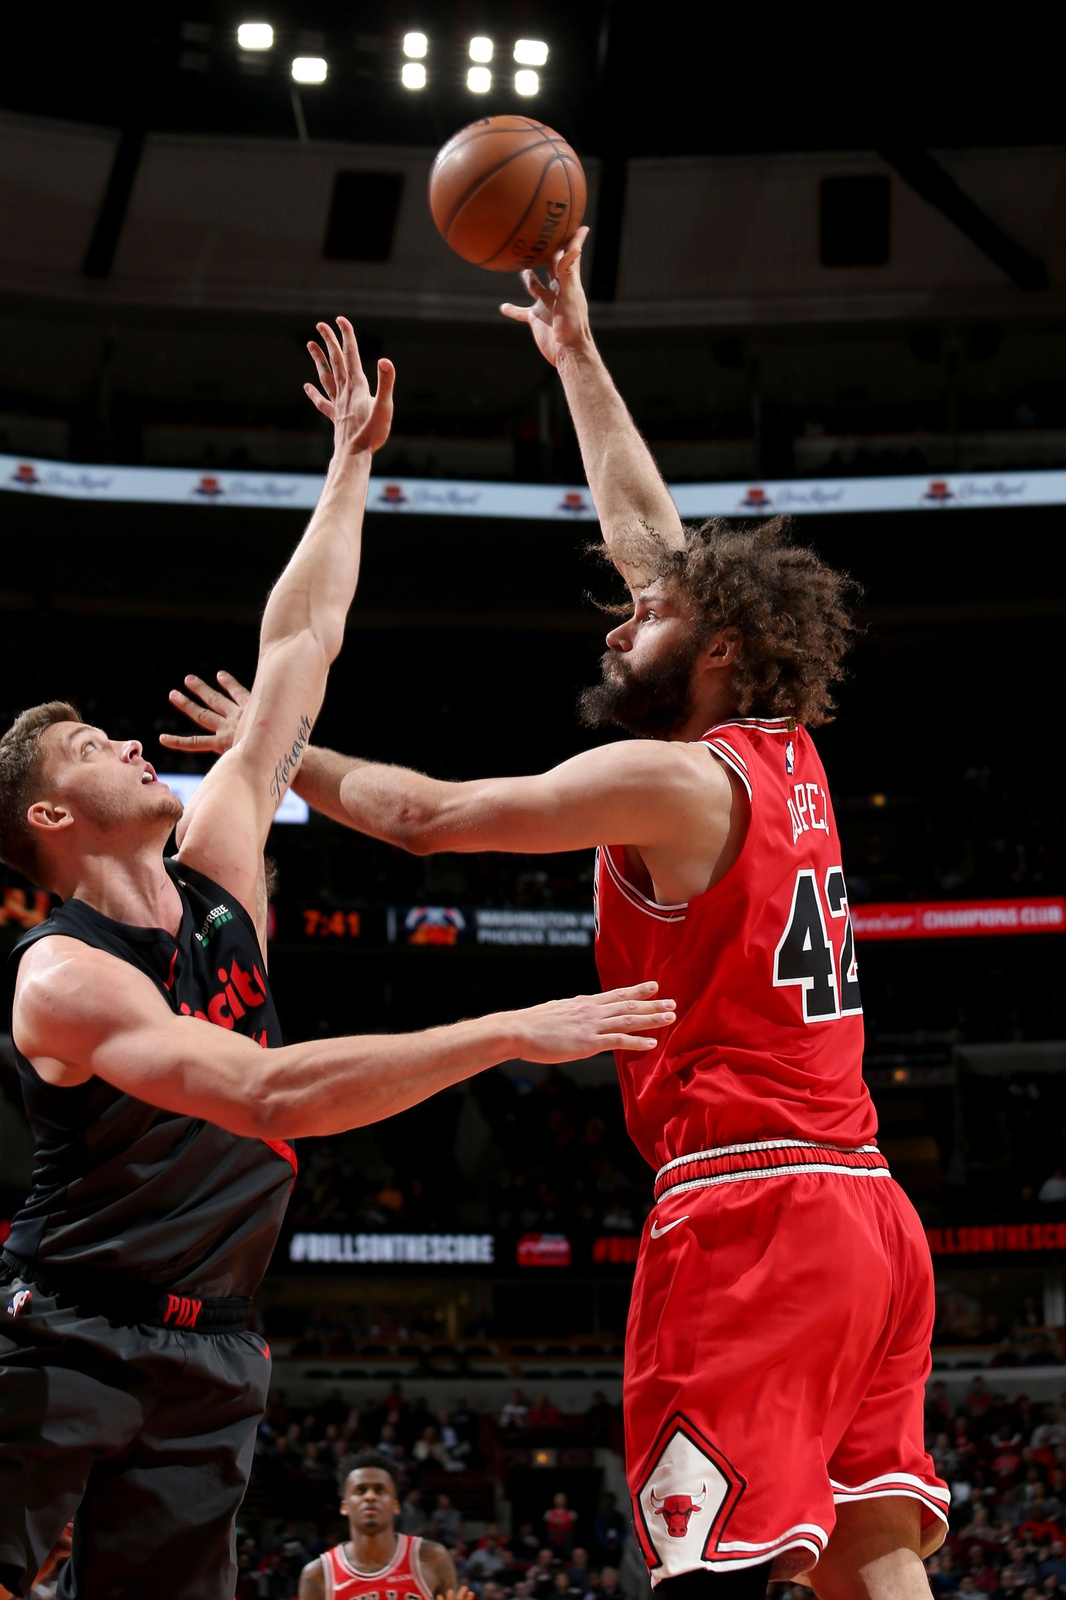 Robin Lopez #42 of the Chicago Bulls shoots the ball during the game against the Portland Trail Blazers on March 27, 2019 at the United Center in Chicago, Illinois.